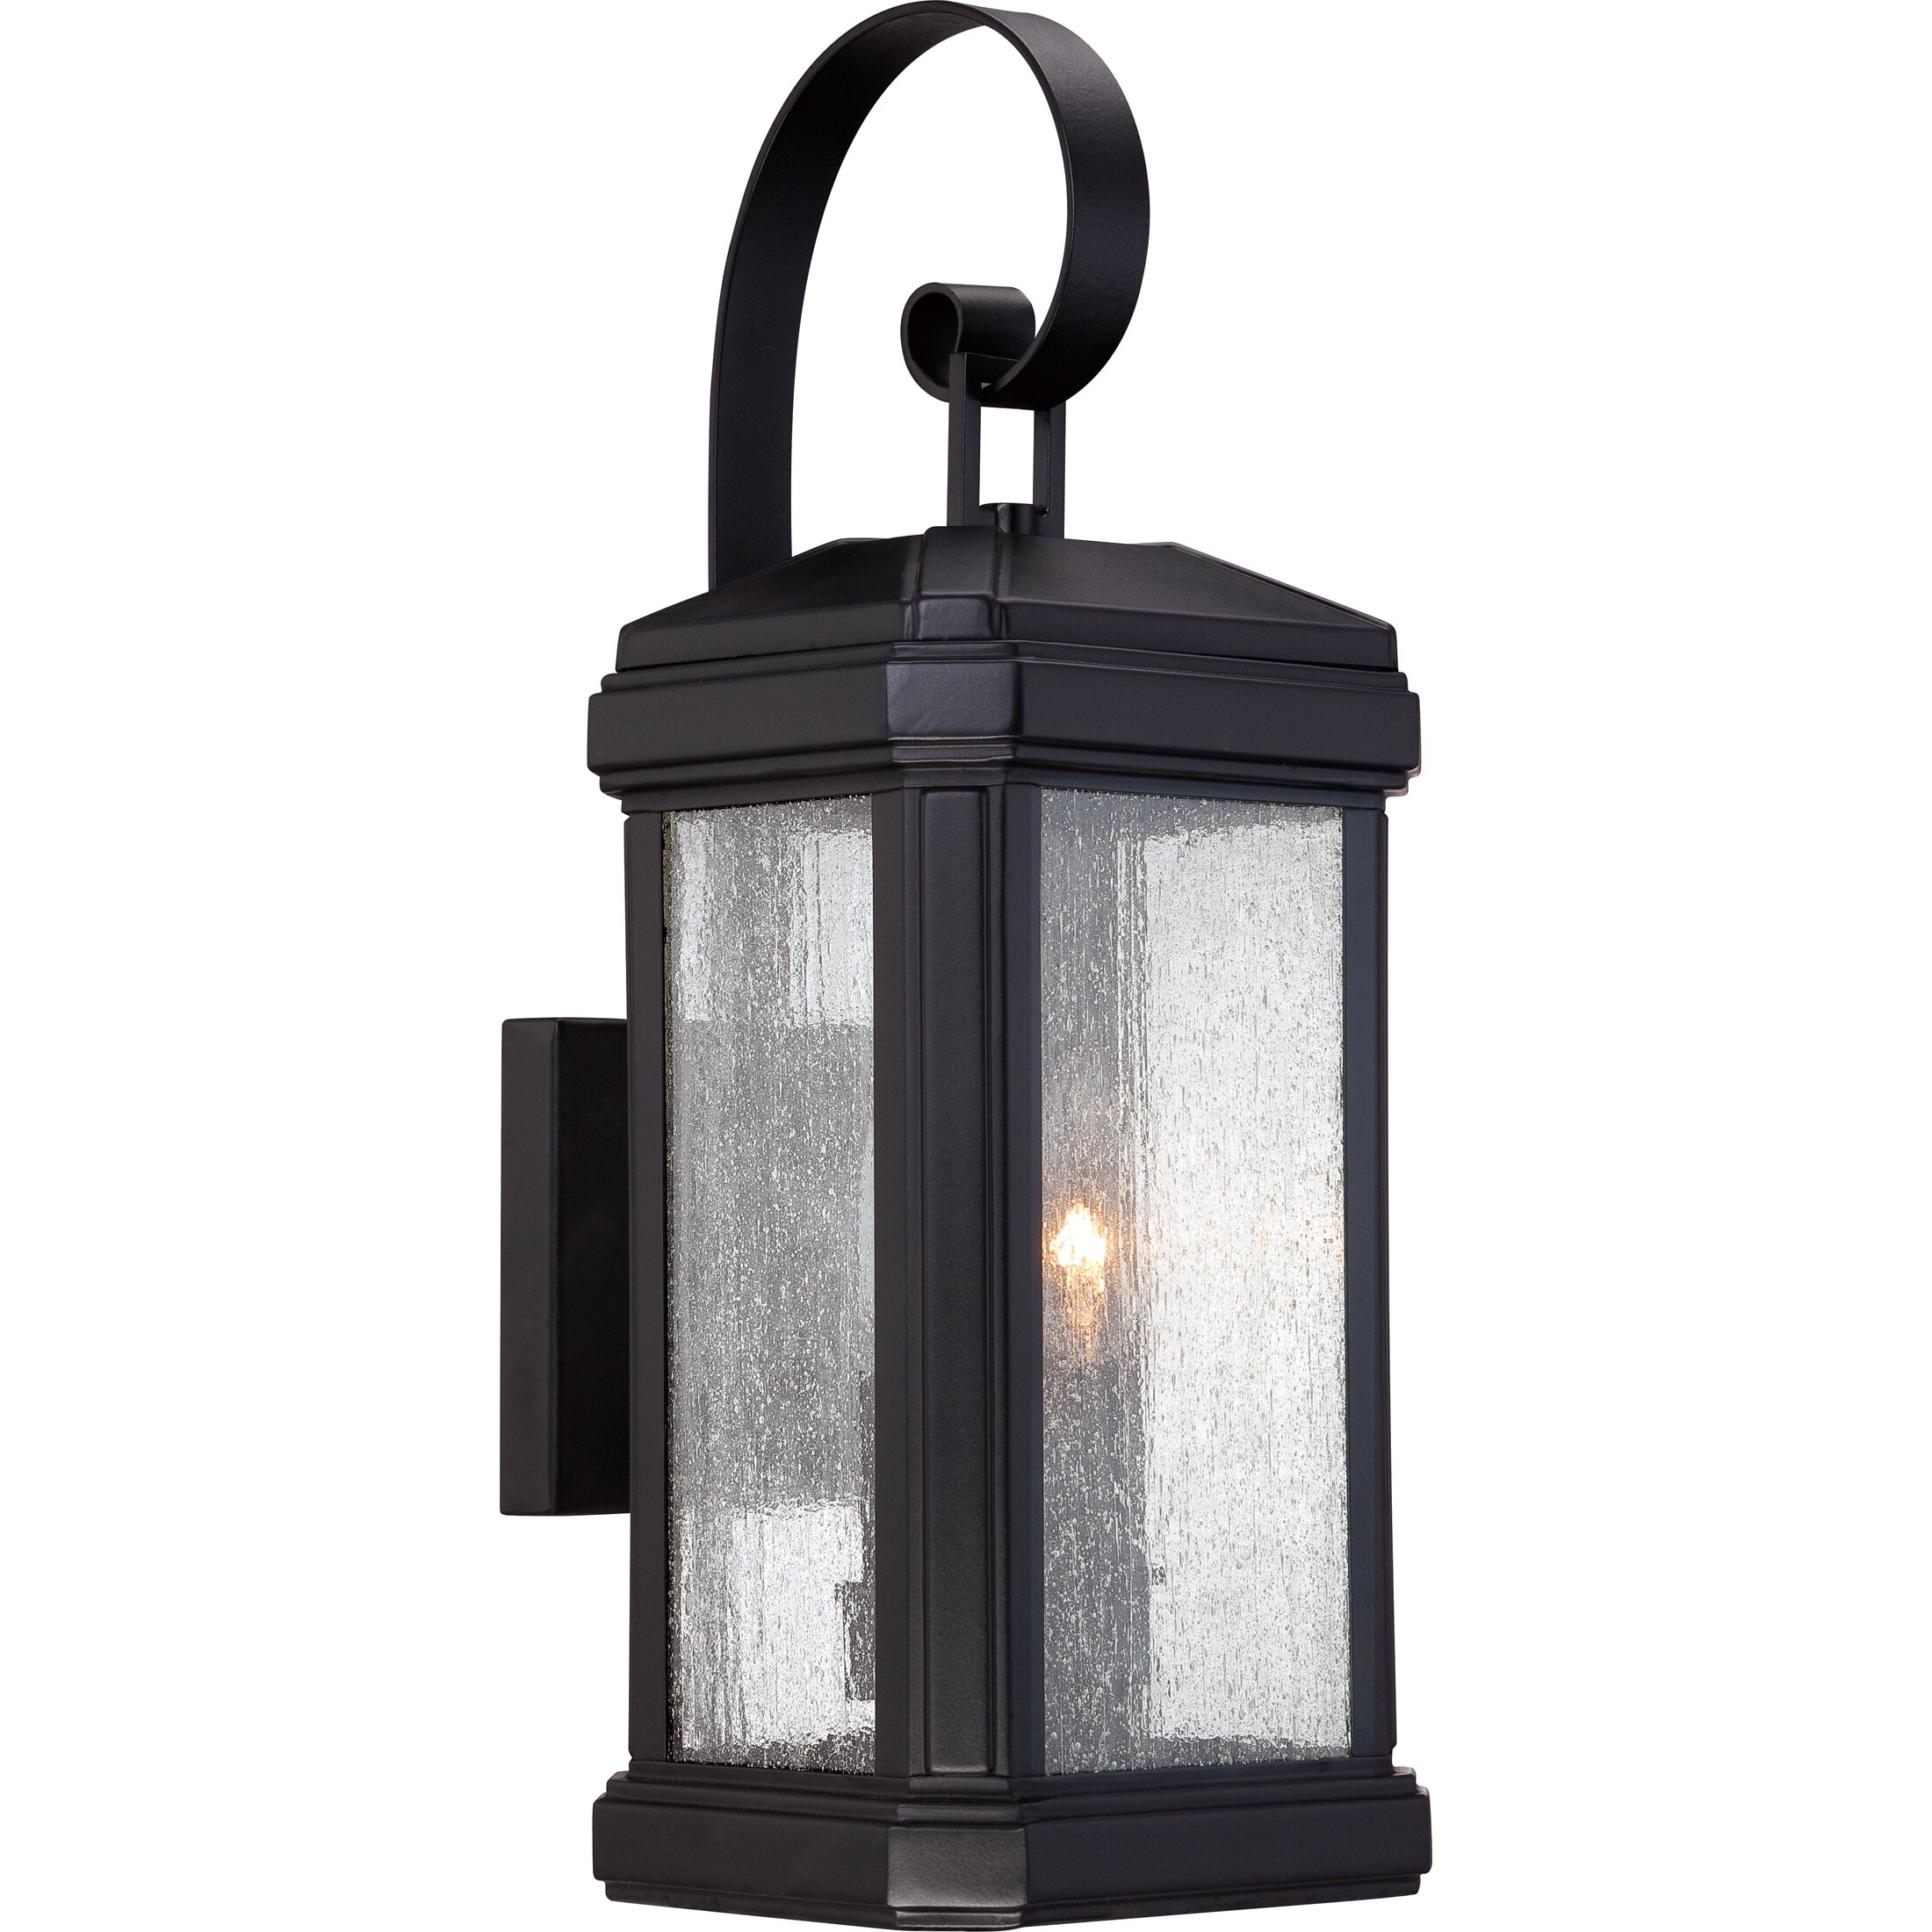 Wayfair Outdoor Wall Lights : Quoizel Trumbull 2 Light Outdoor Wall Lantern & Reviews Wayfair